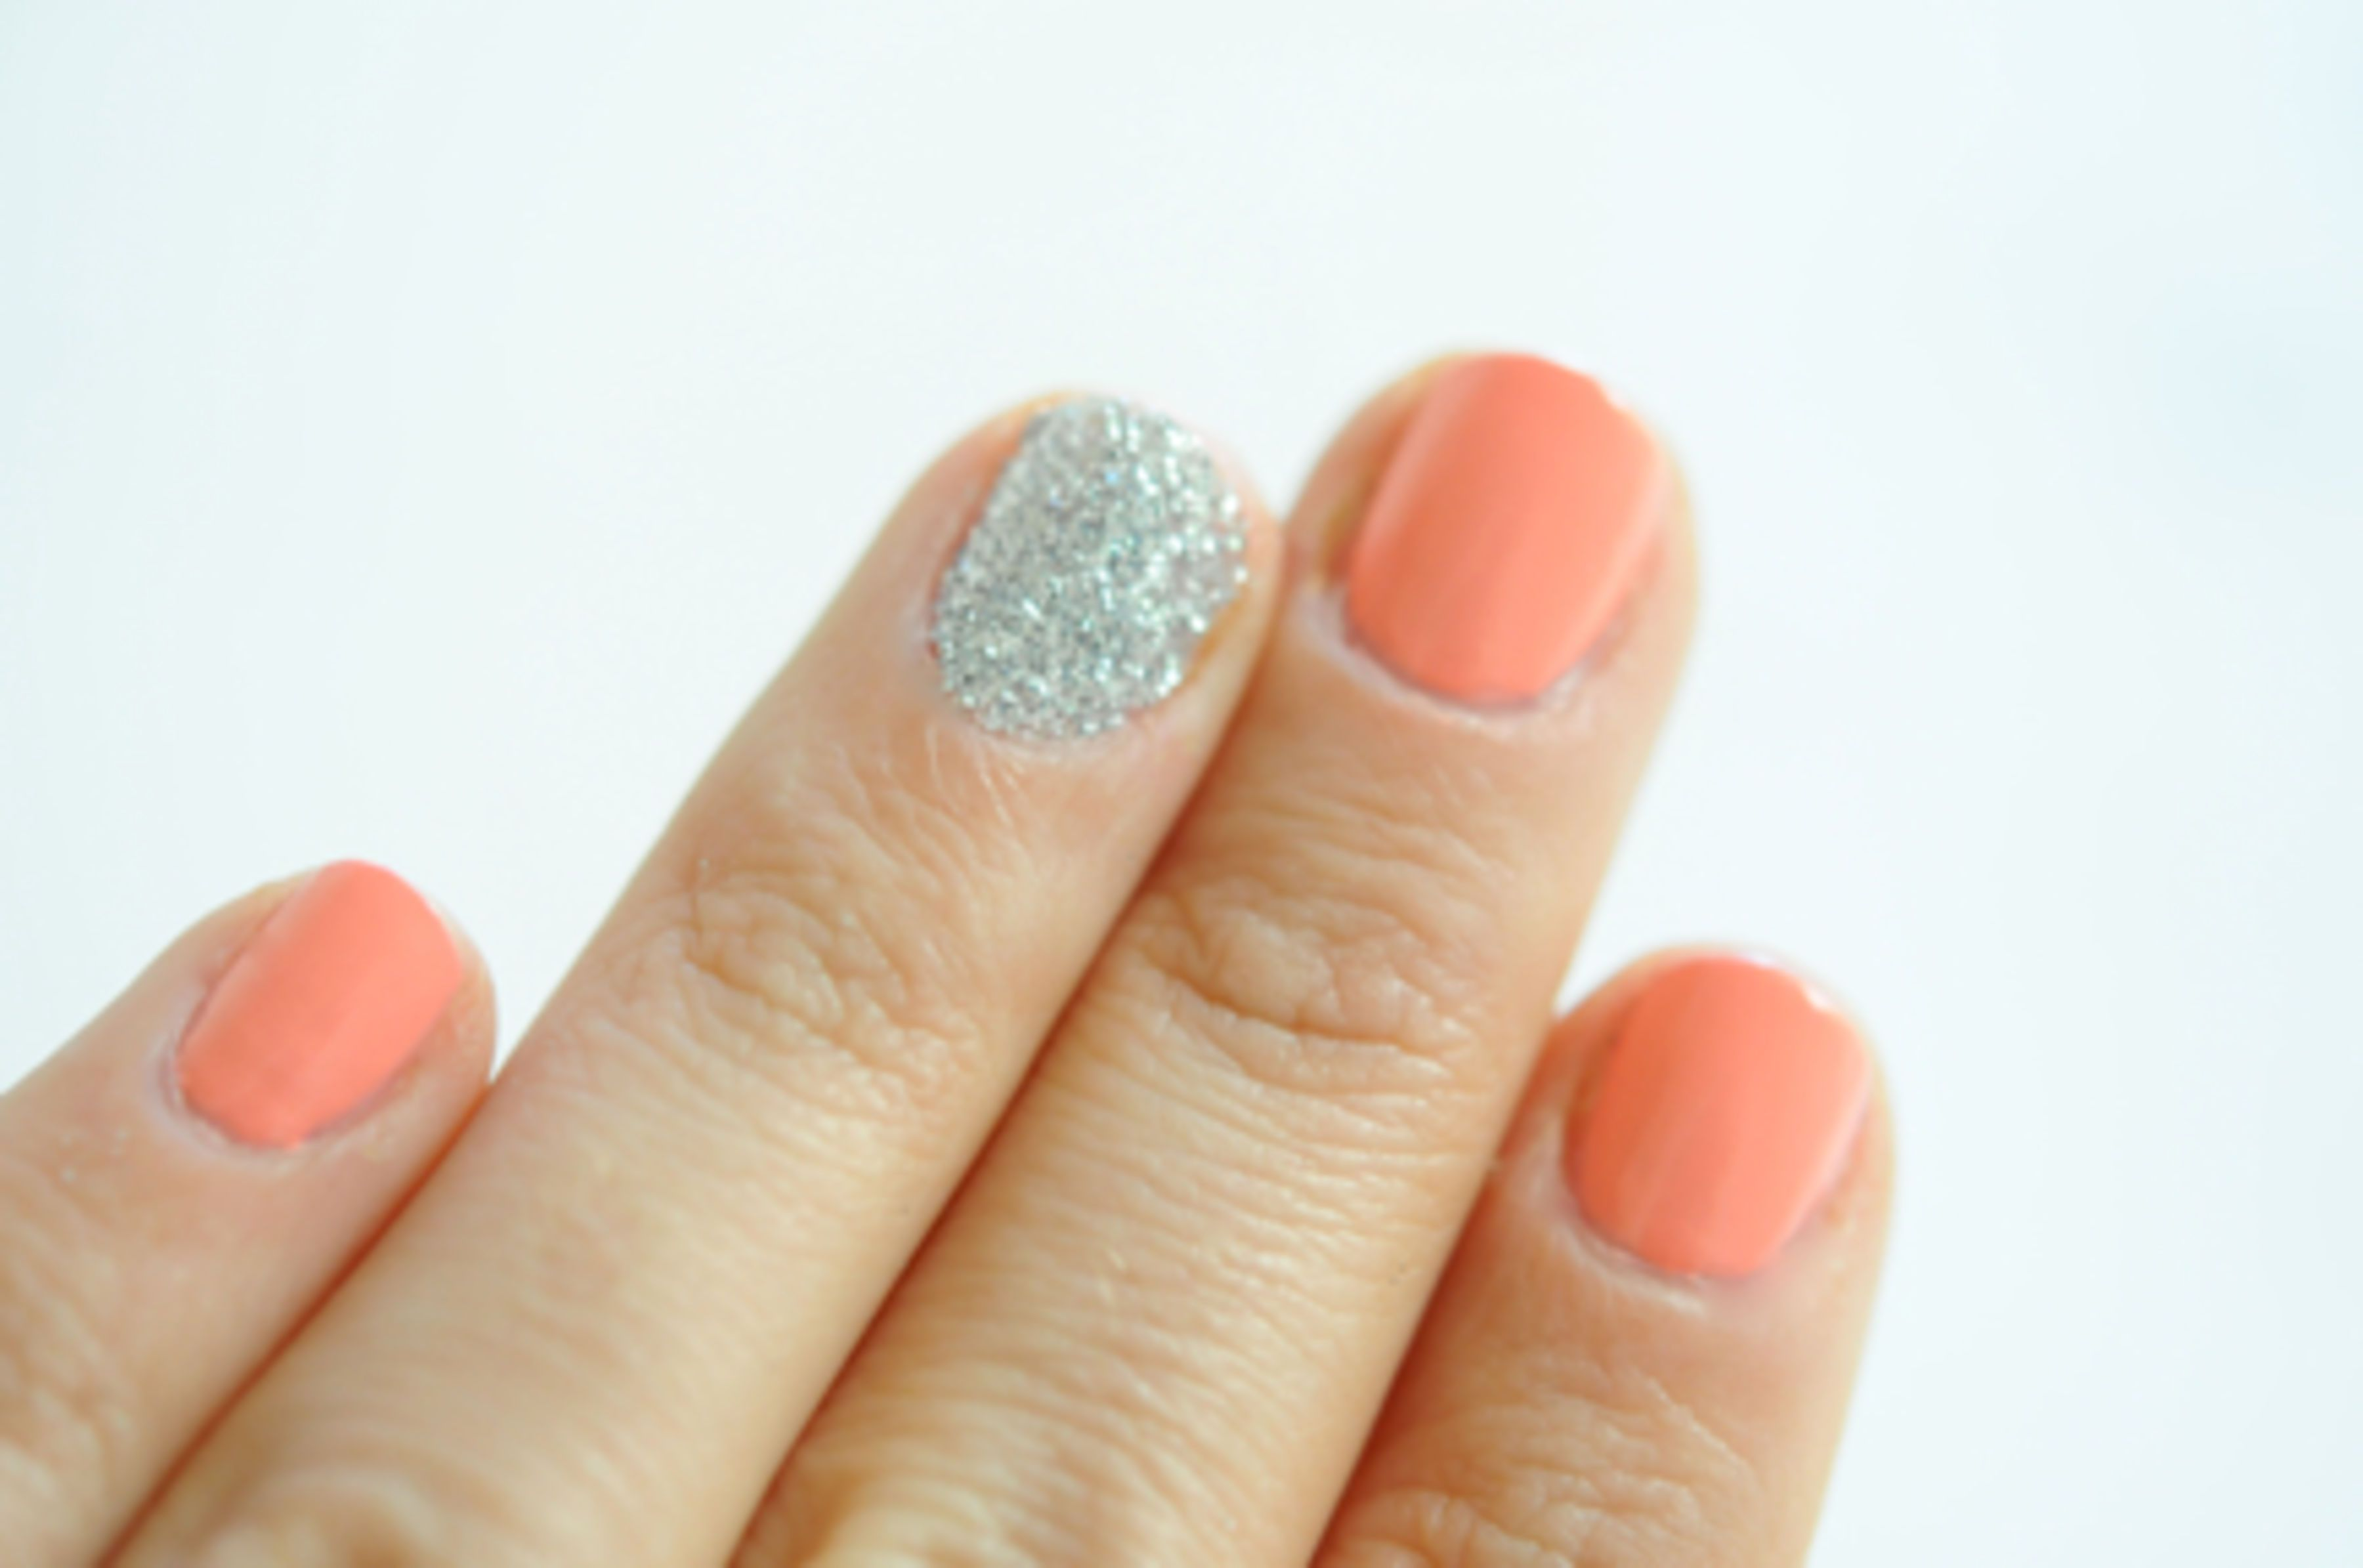 Discover how to use loose glitter on your nails with our